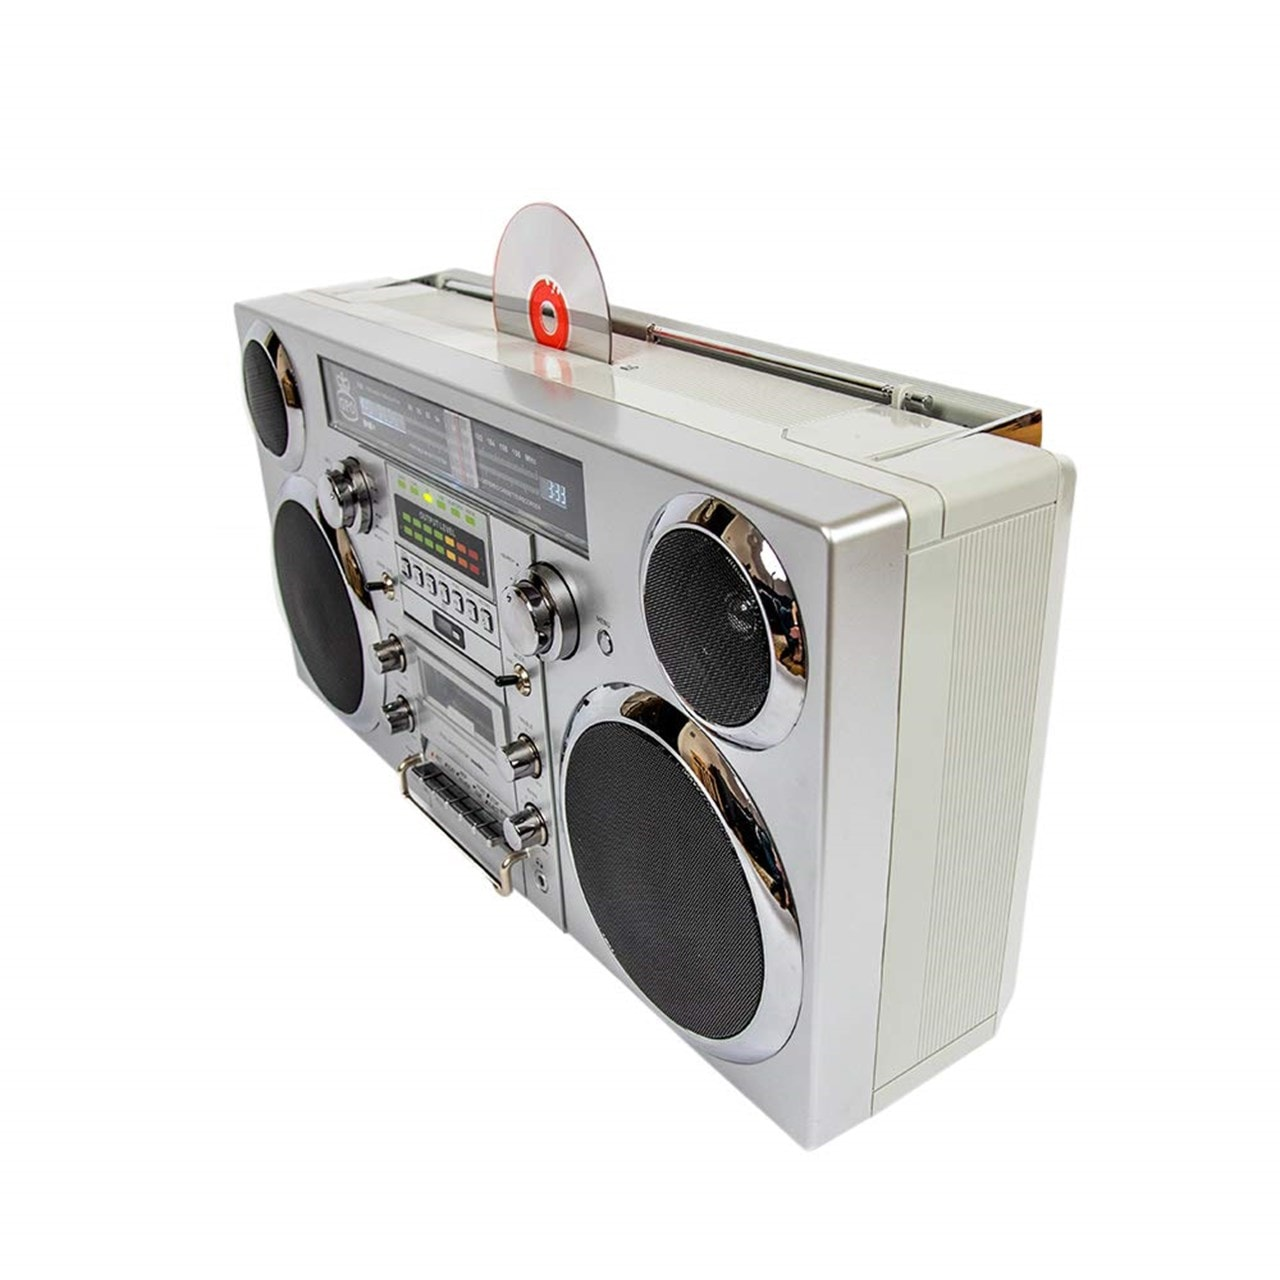 GPO Brooklyn Portable Boombox - 3